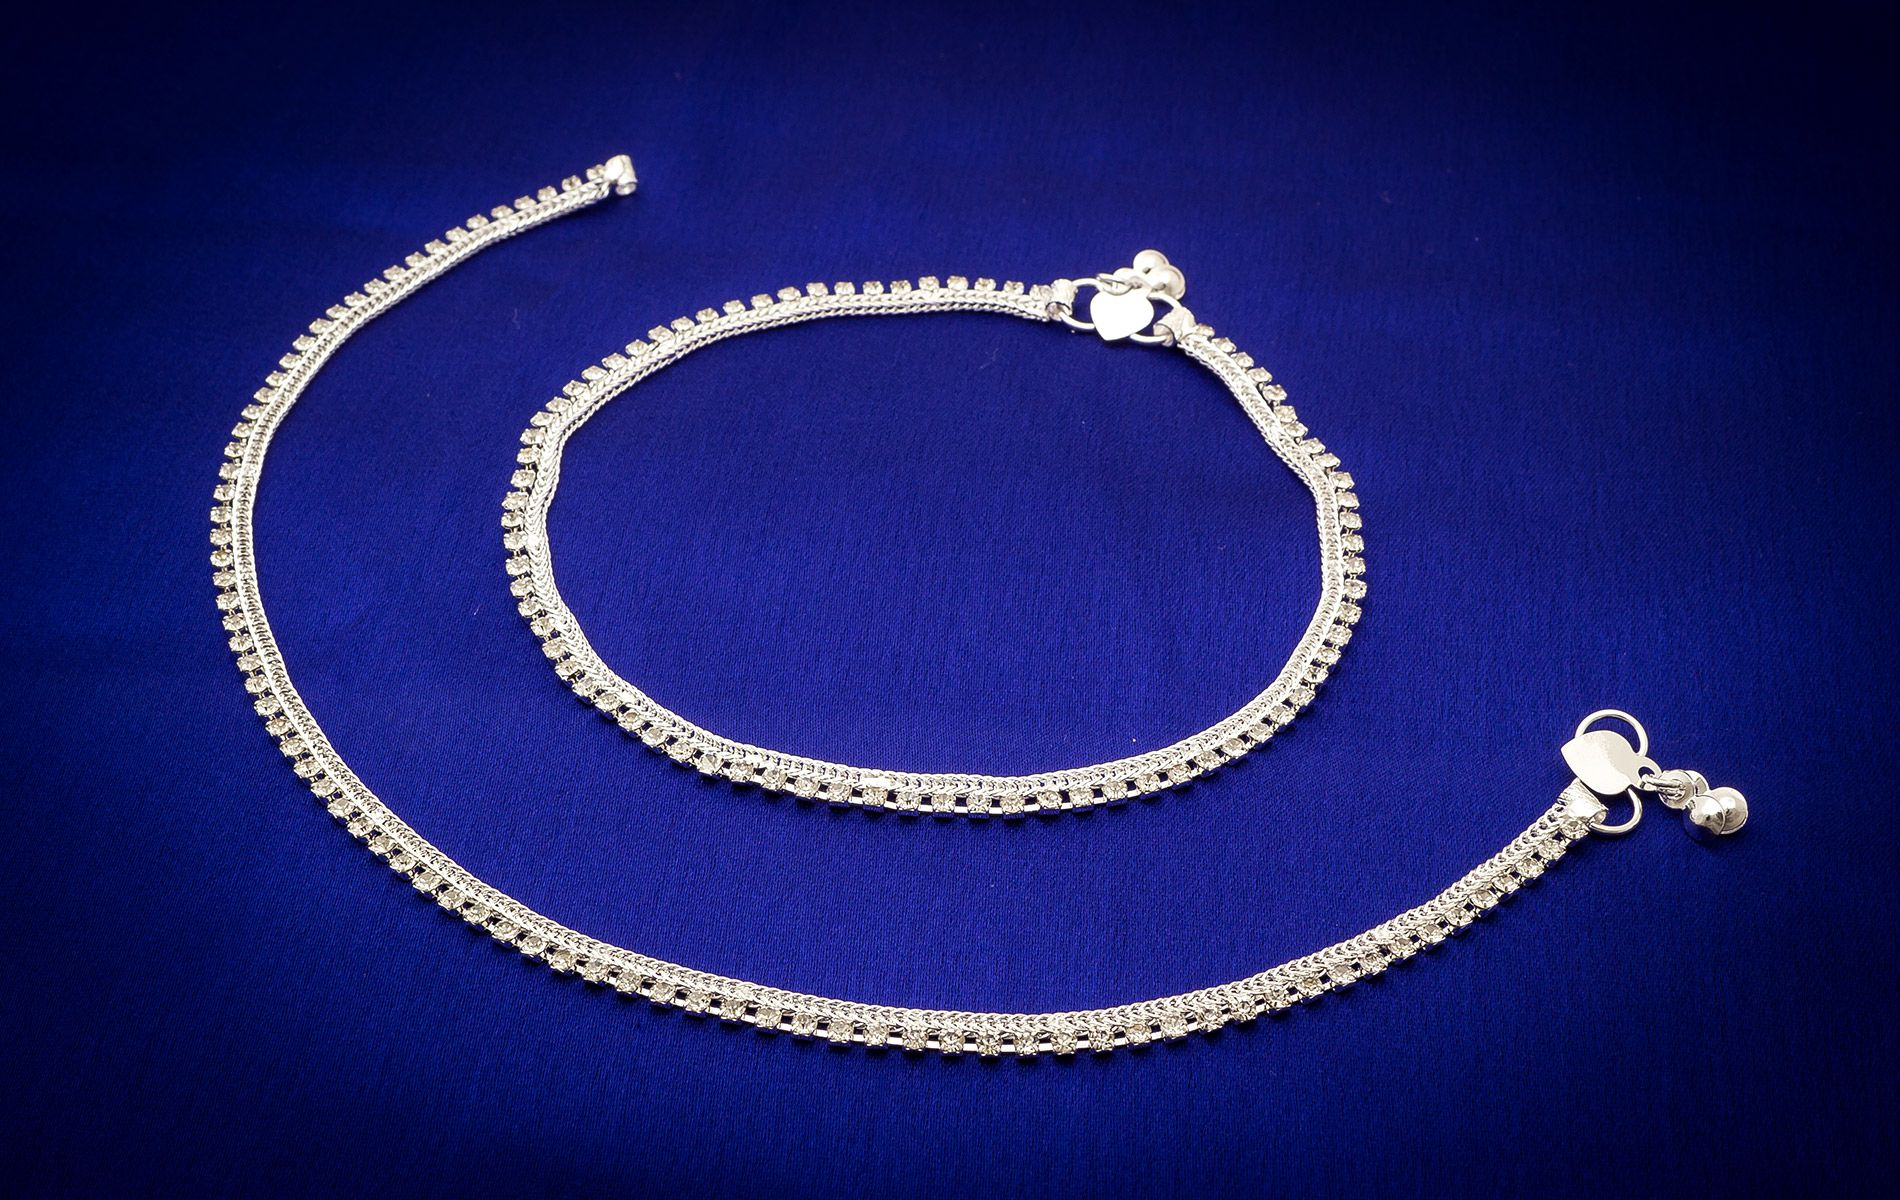 Aadita Ethnic Traditional German Oxidised Tribal Silver Plated Anklets payal for Women and Girls